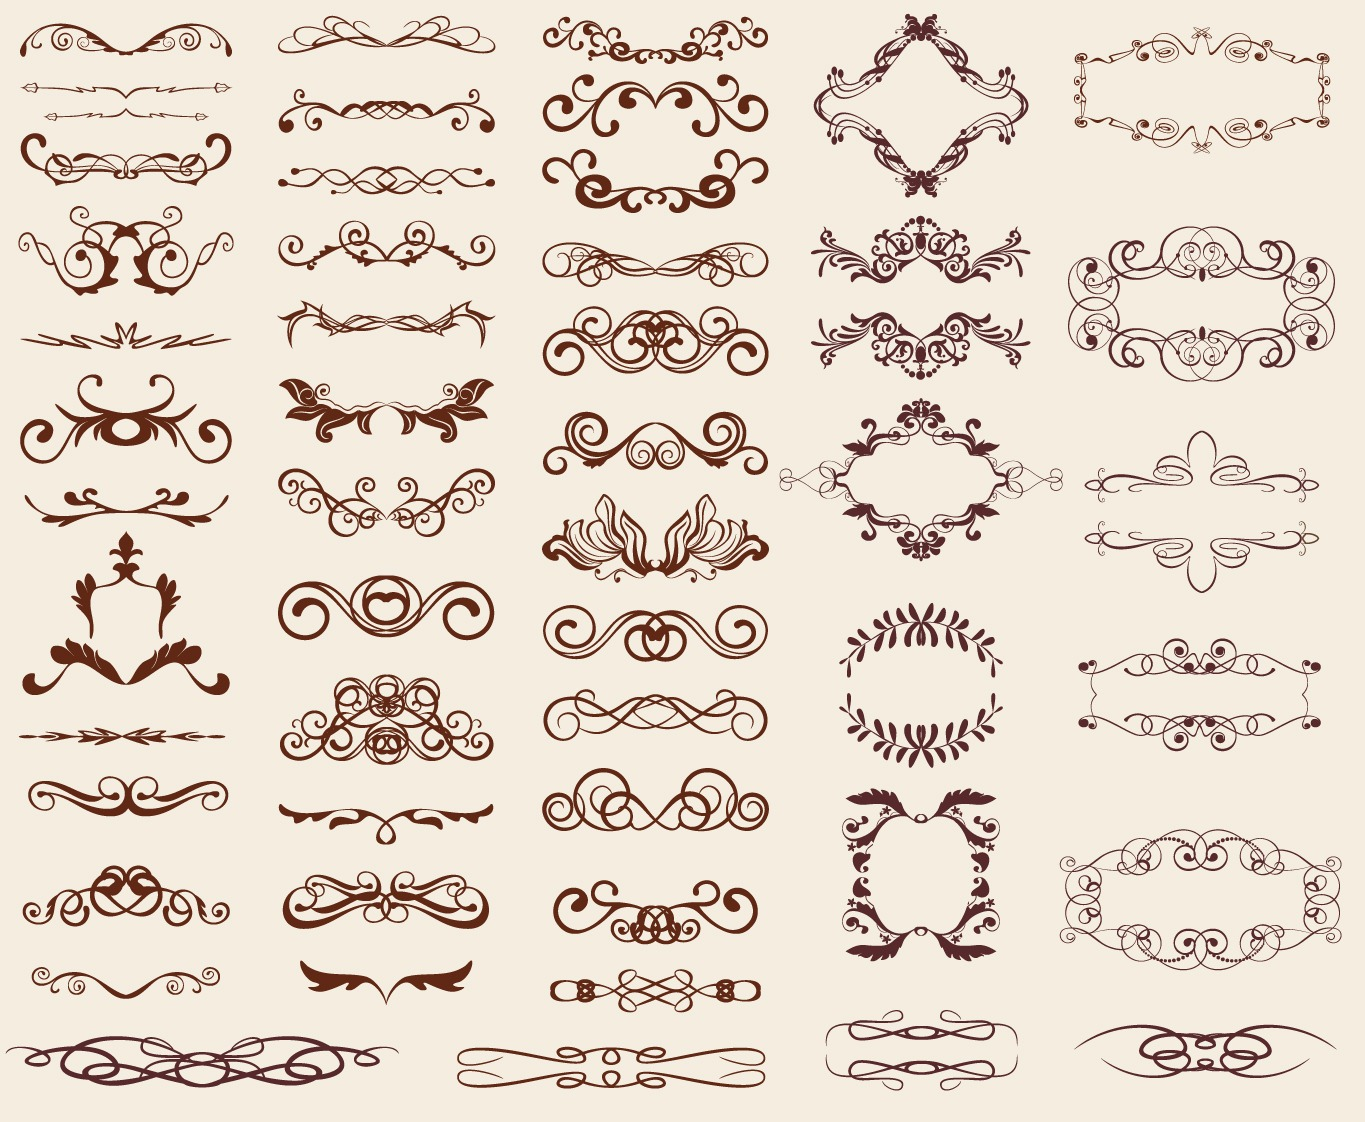 16 Vintage Design Elements Images